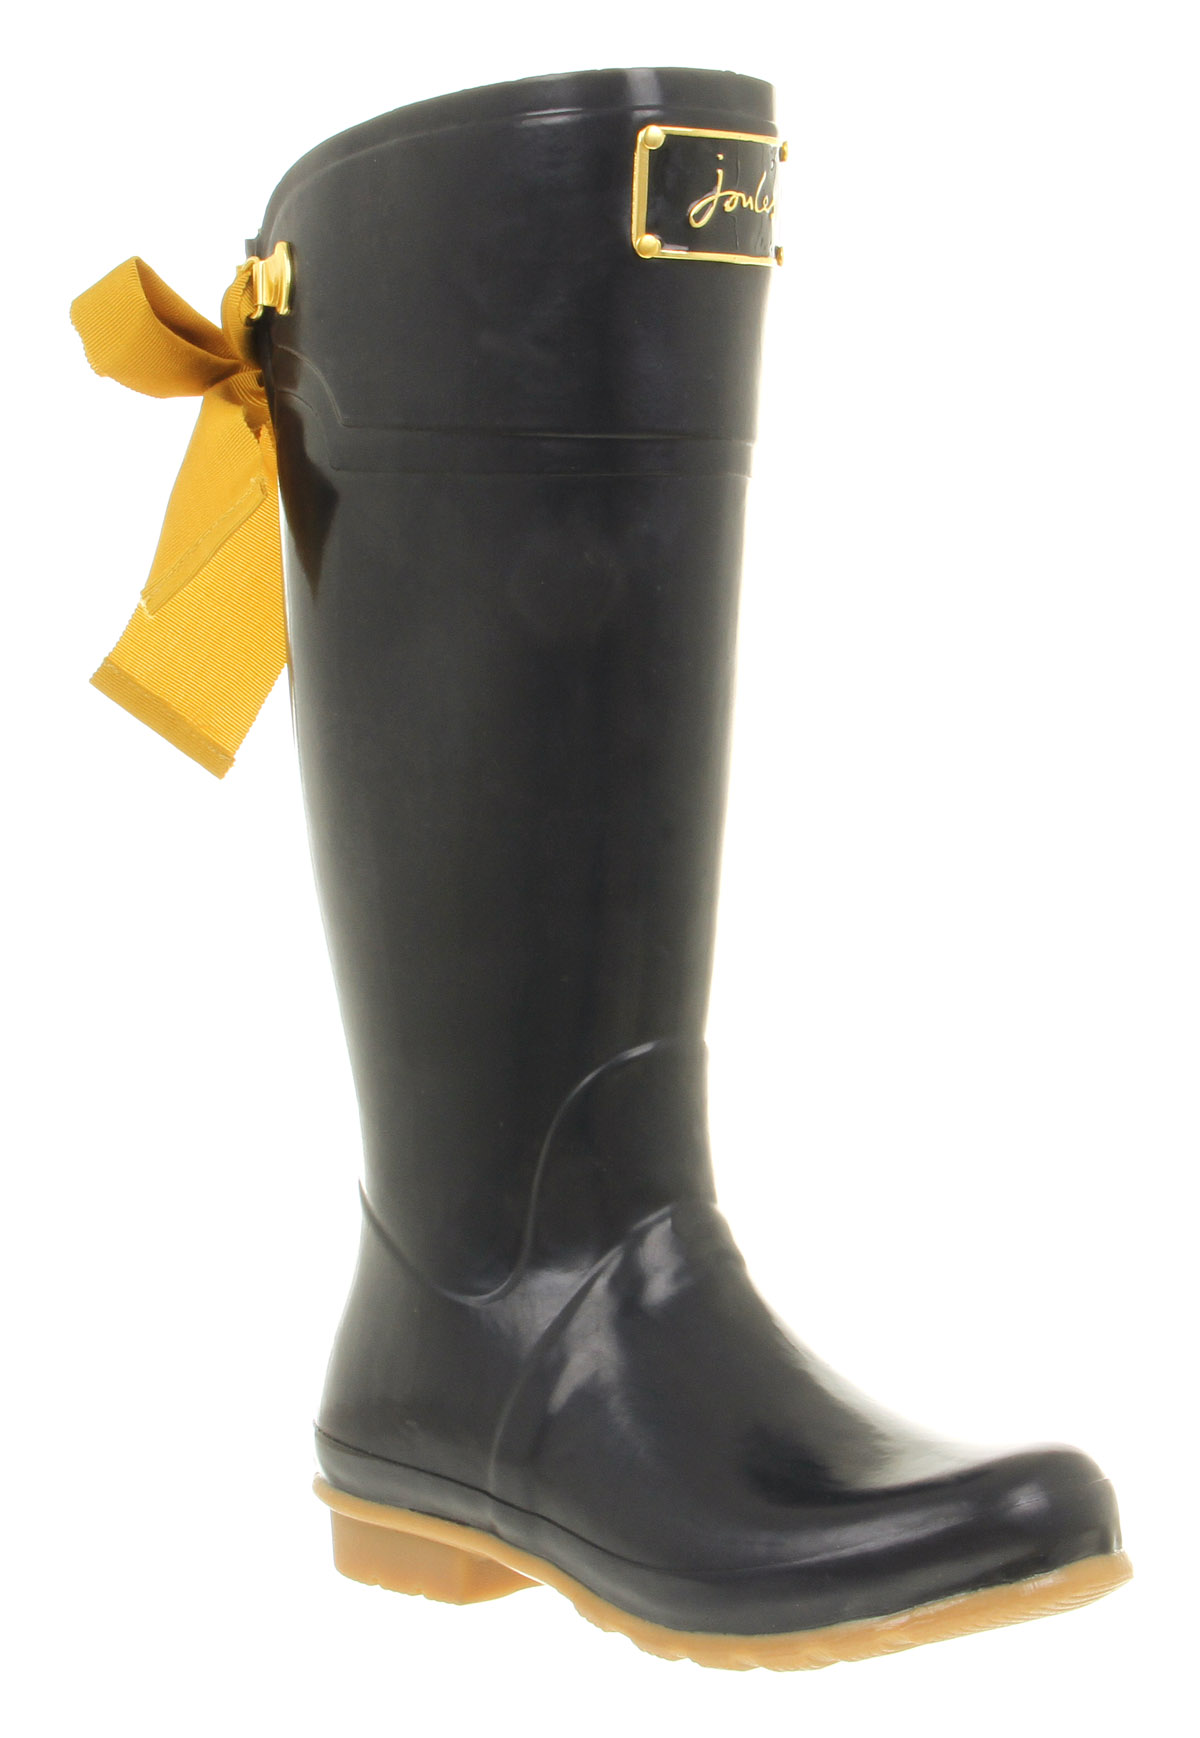 Womens-Joules-Evedon-Welly-Navy-Rubber-Boots